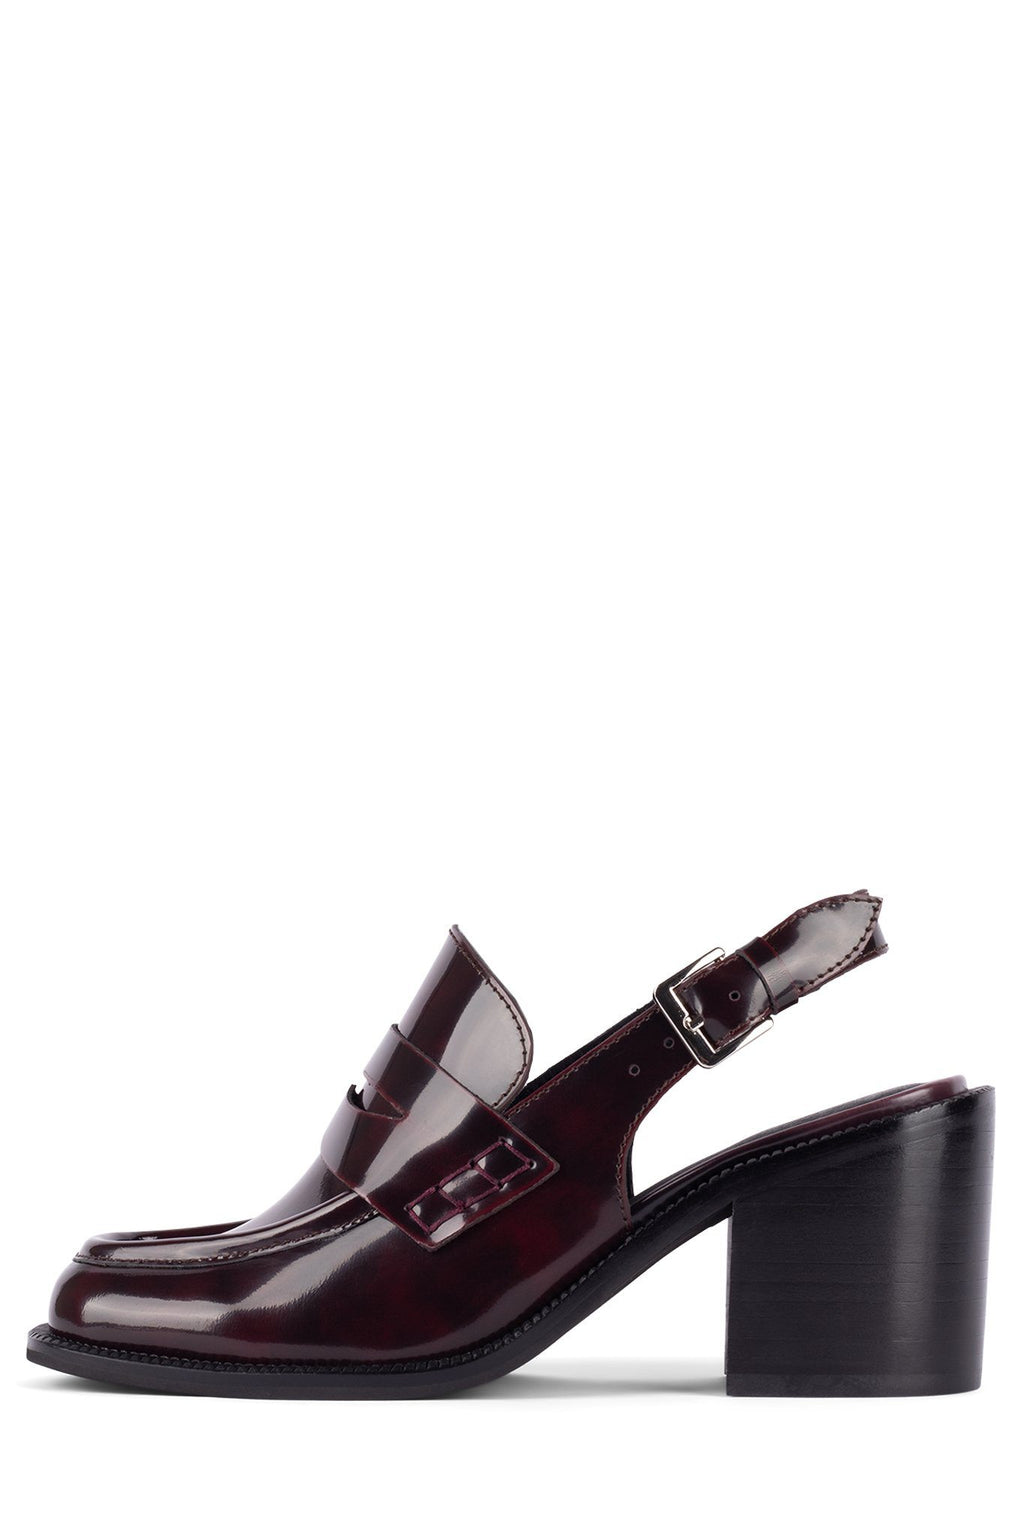 MILLHOUSE Loafer STRATEGY Wine Ruboff 6